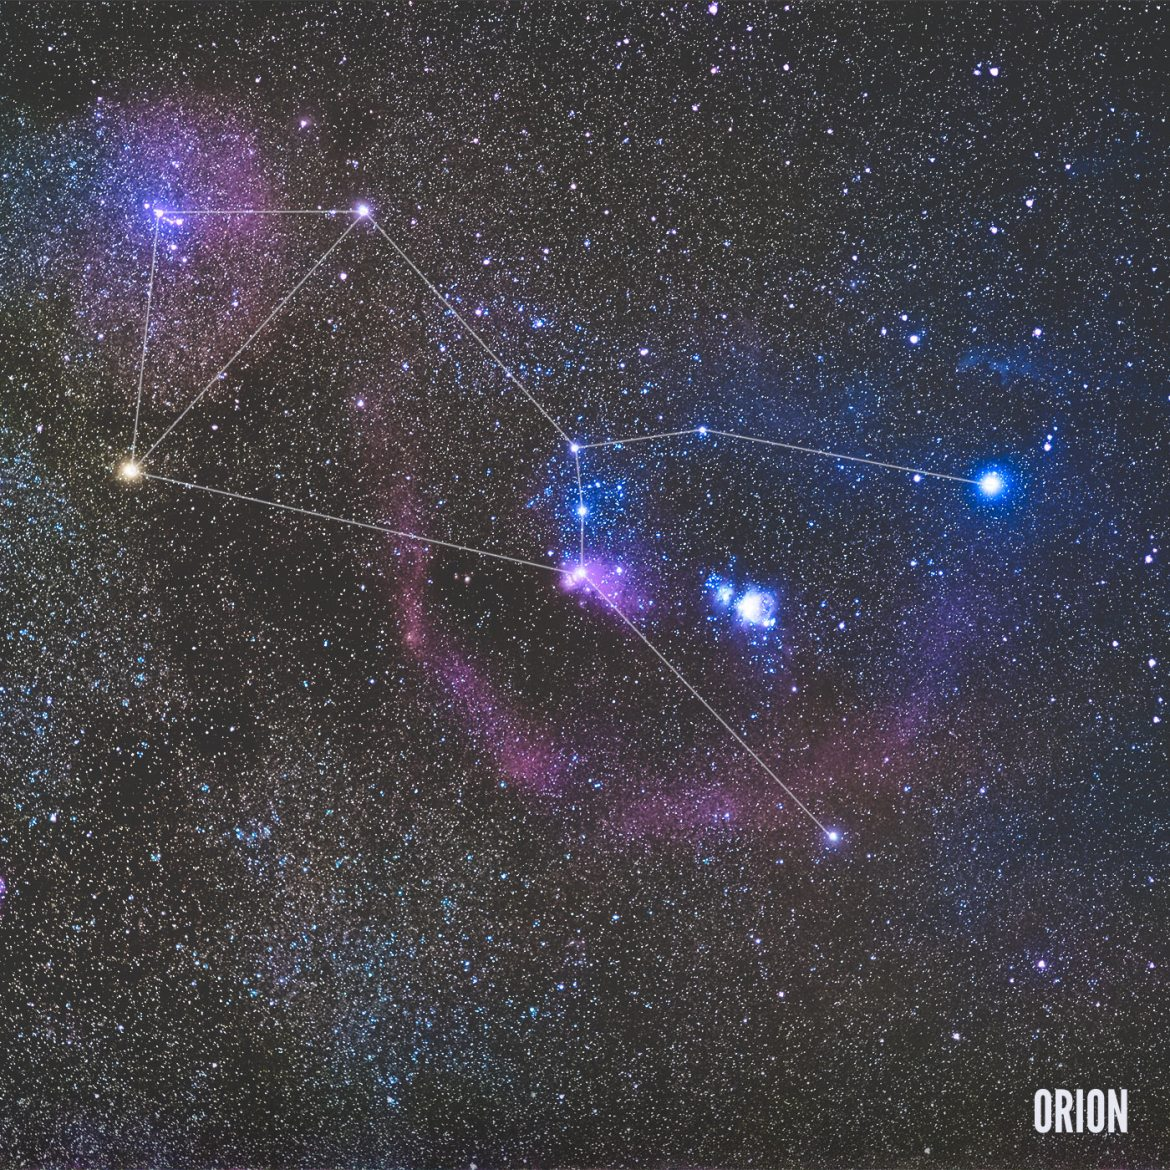 La constellation d'Orion